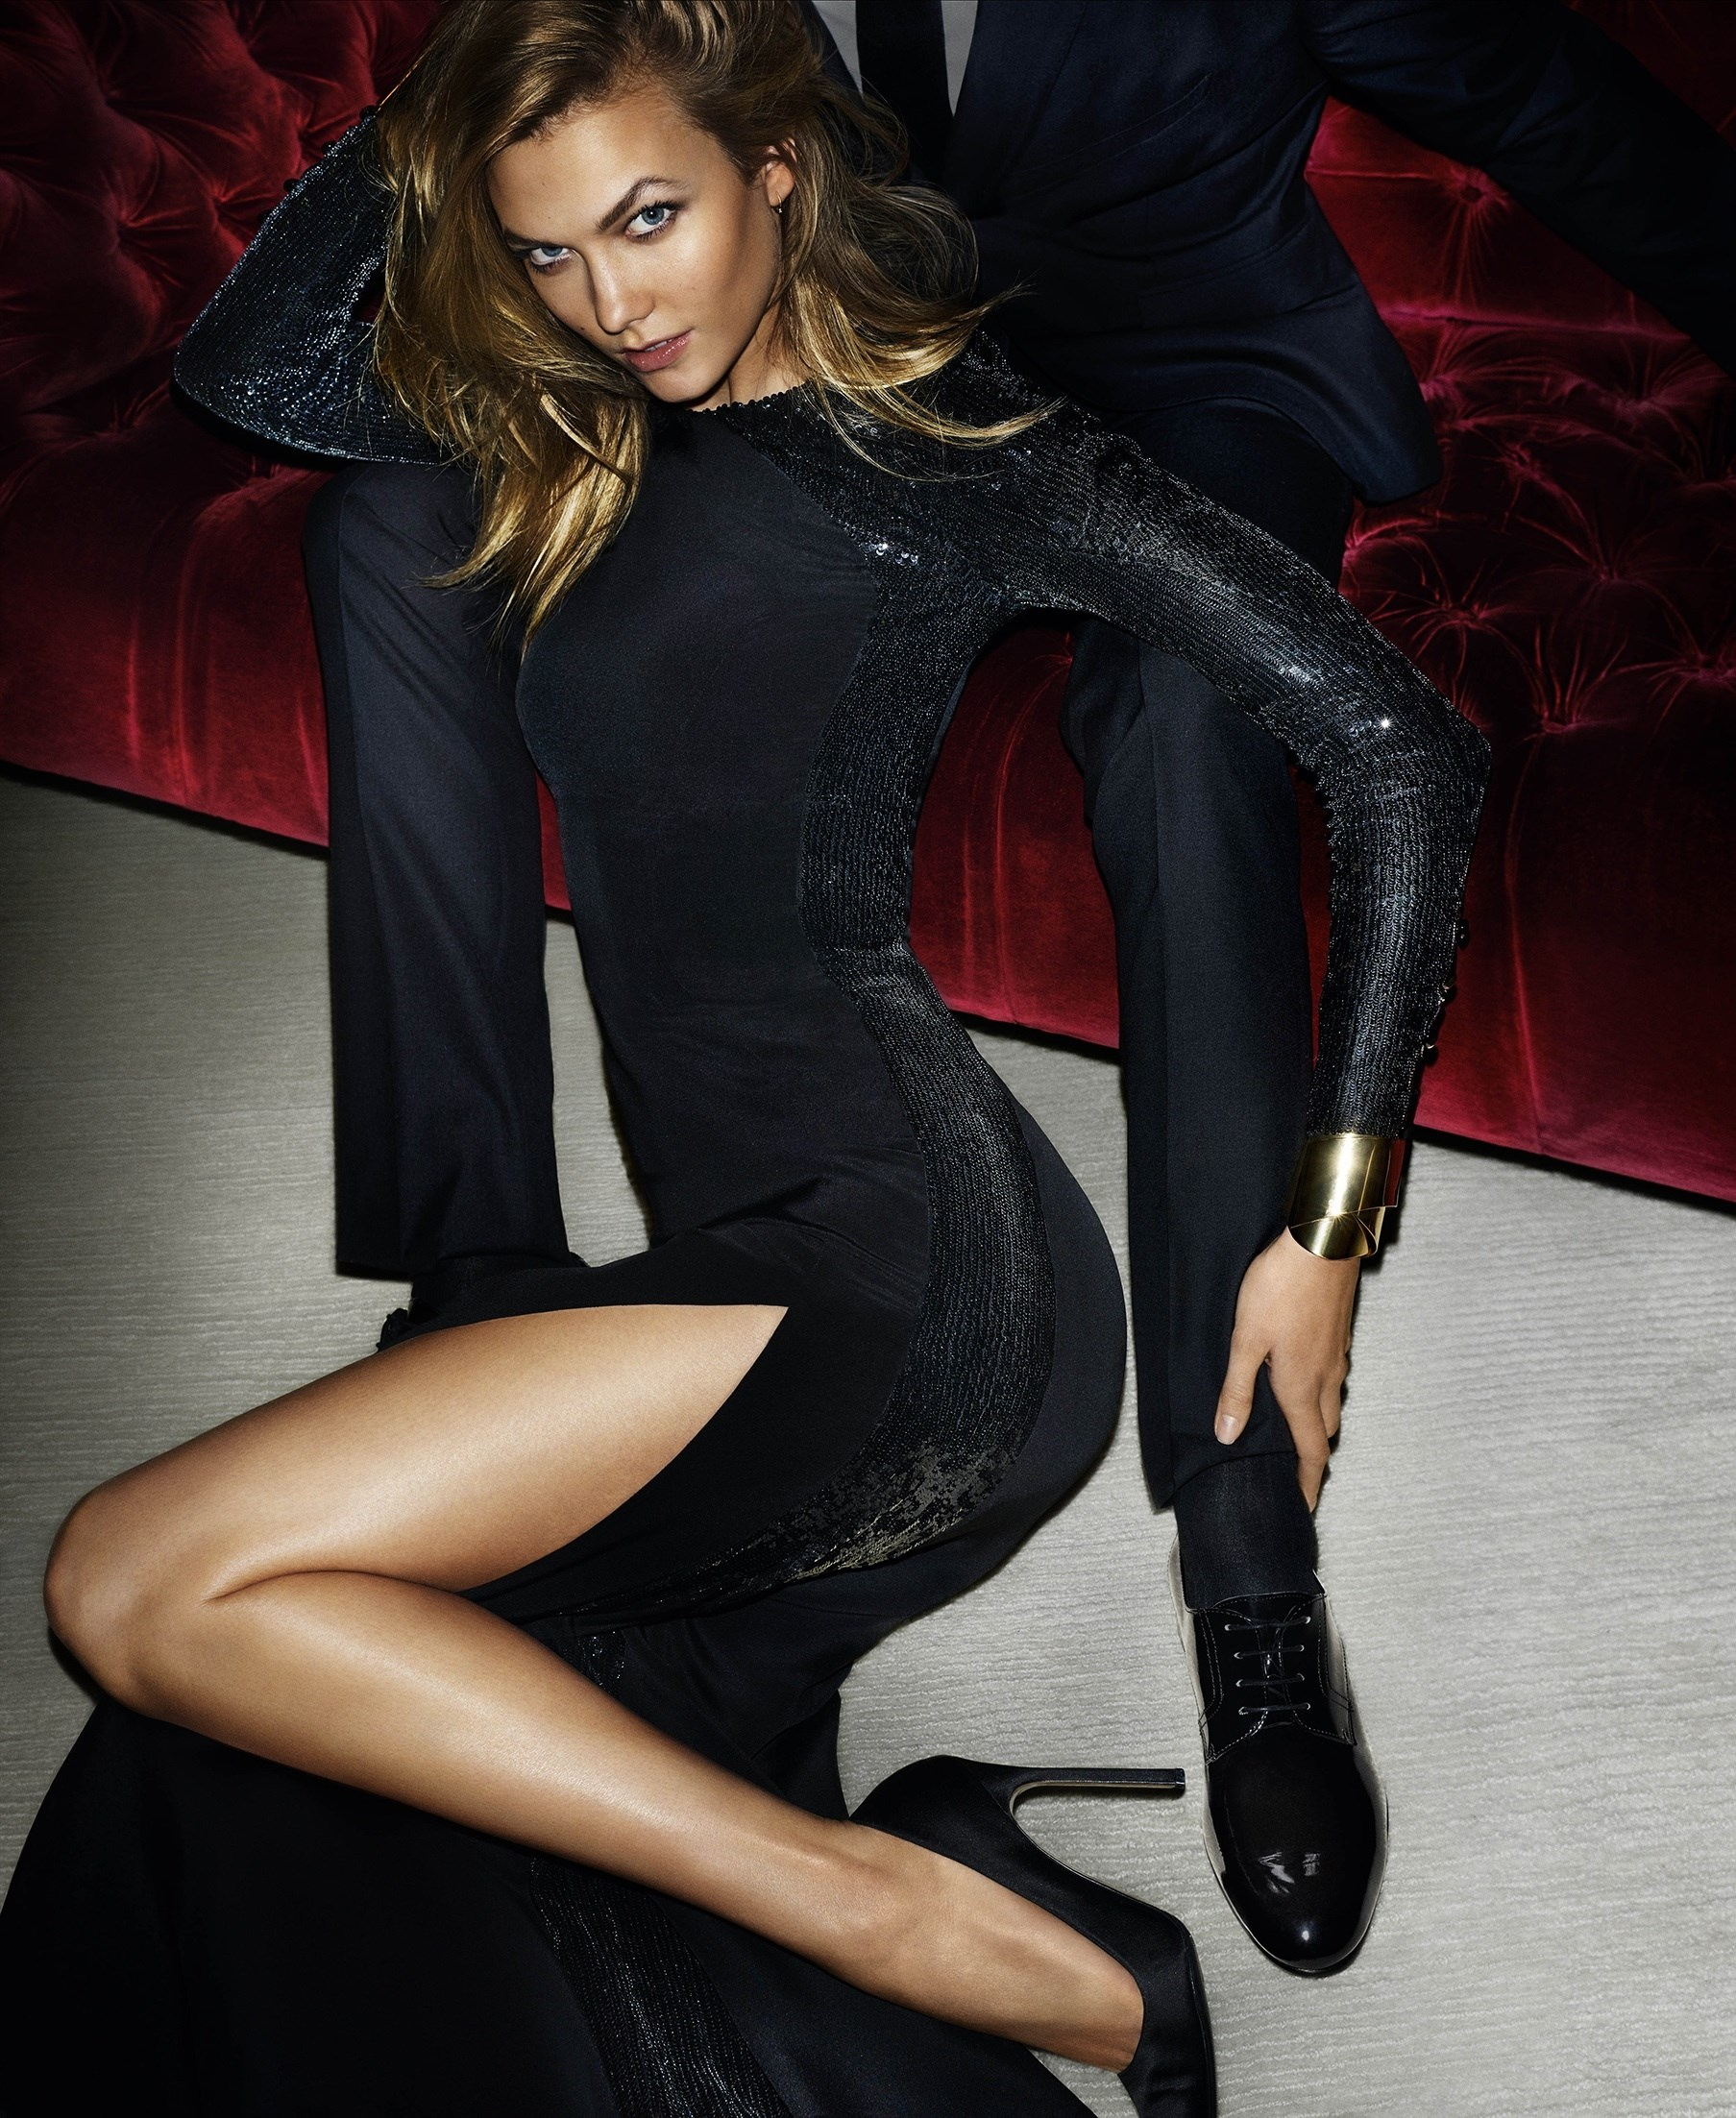 Carolina Herrera Good Girl ad